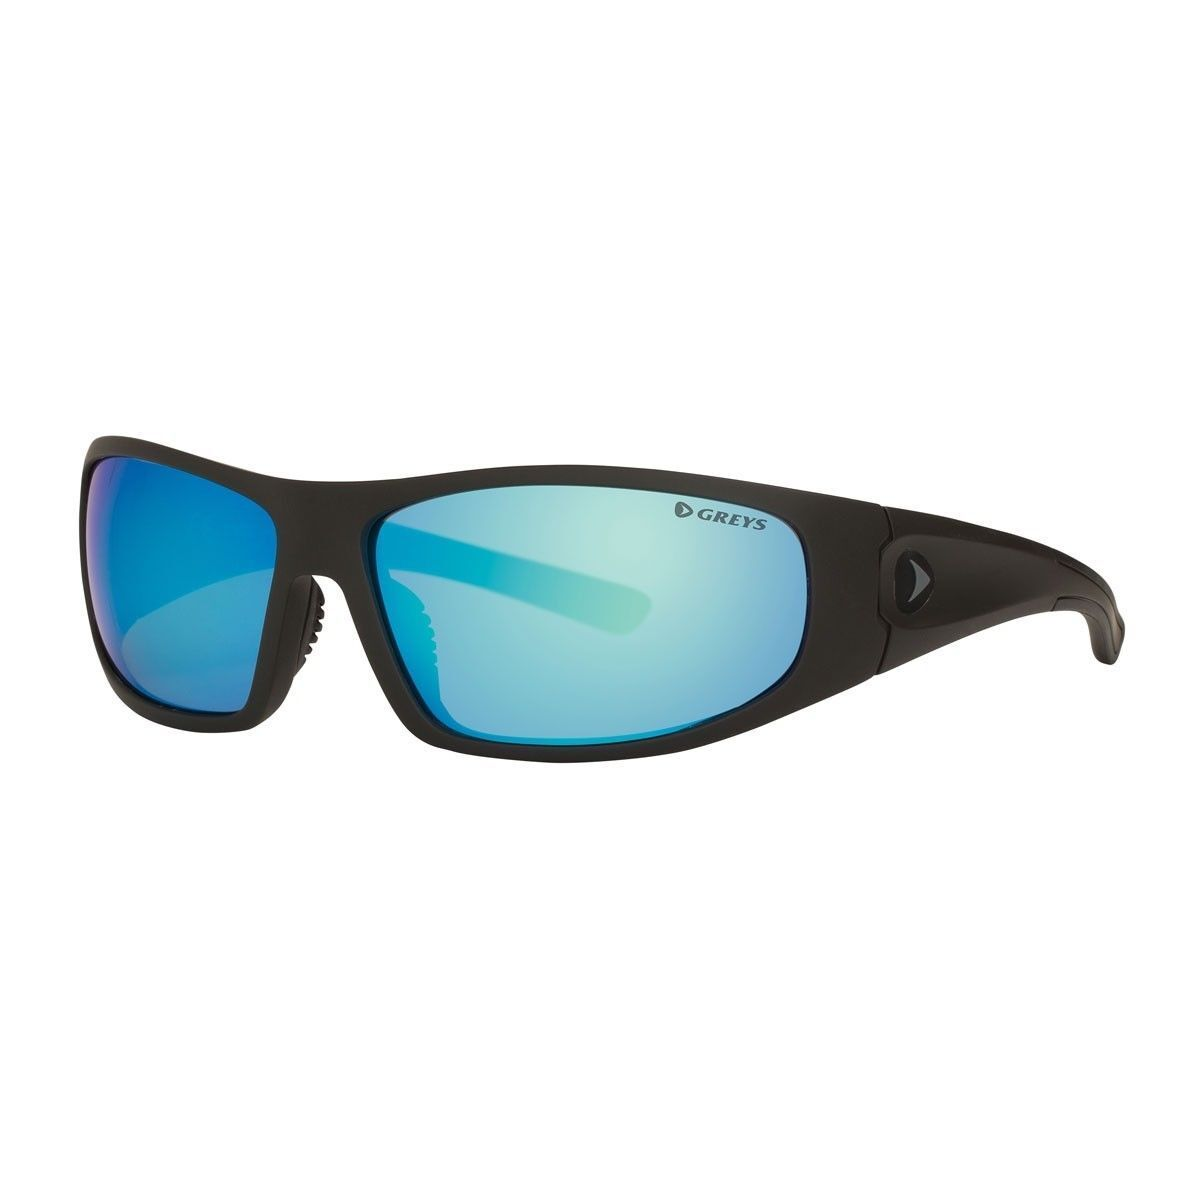 Graus G1/G3 Polarised Sunglasses for Coarse Fishing - CLEARANCE SALE